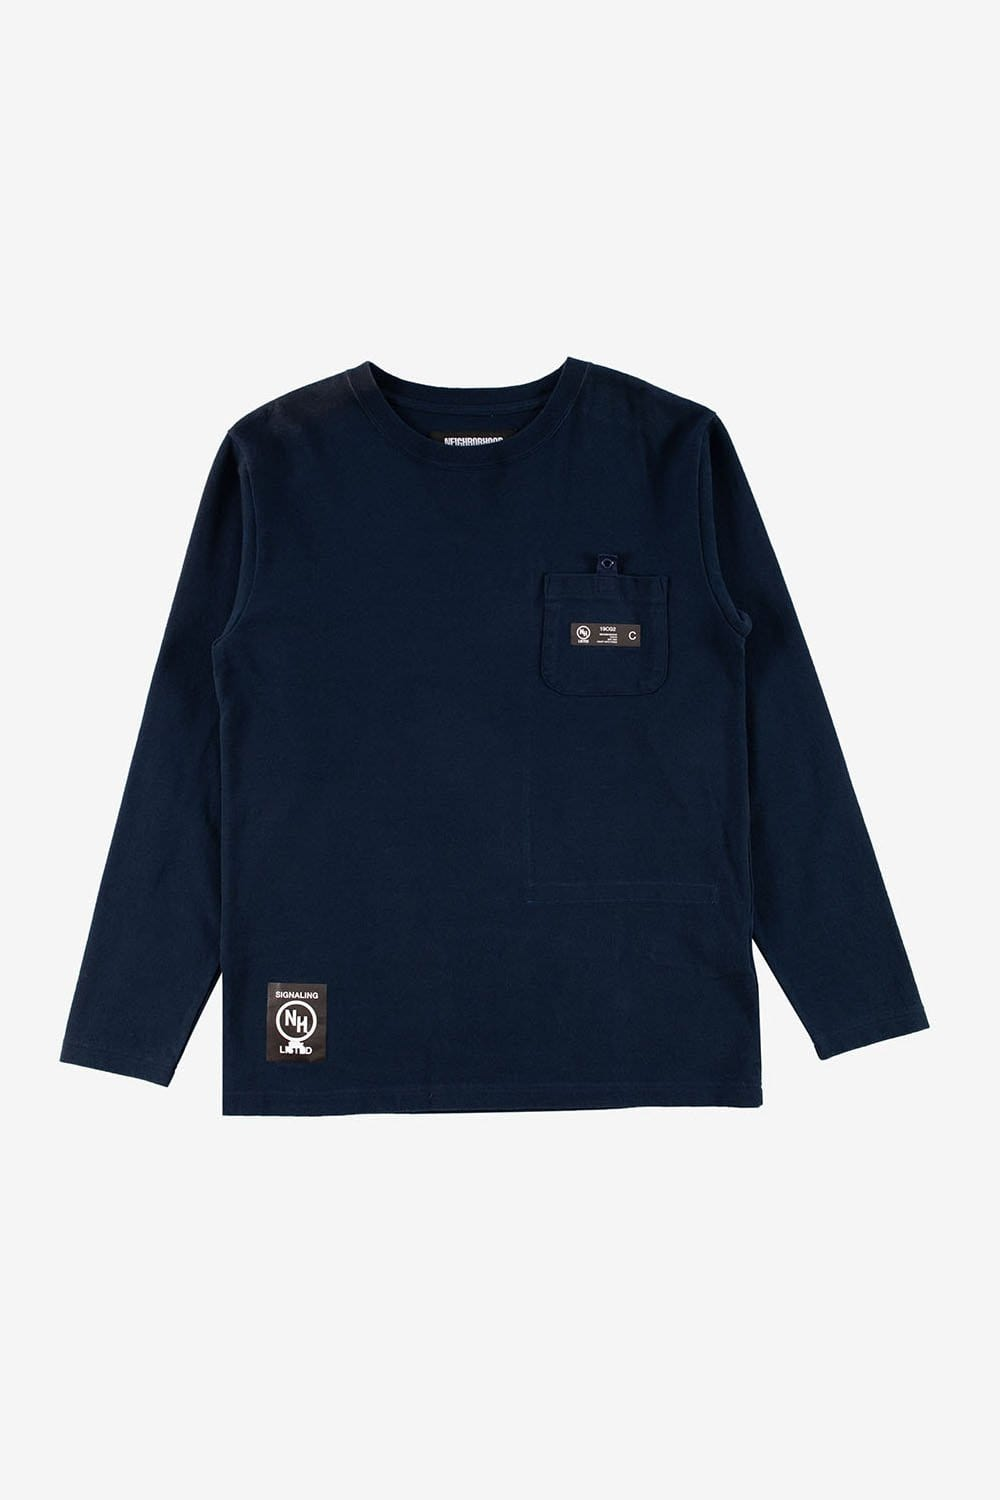 Neighborhood Apparel DH Long Sleeve Tee